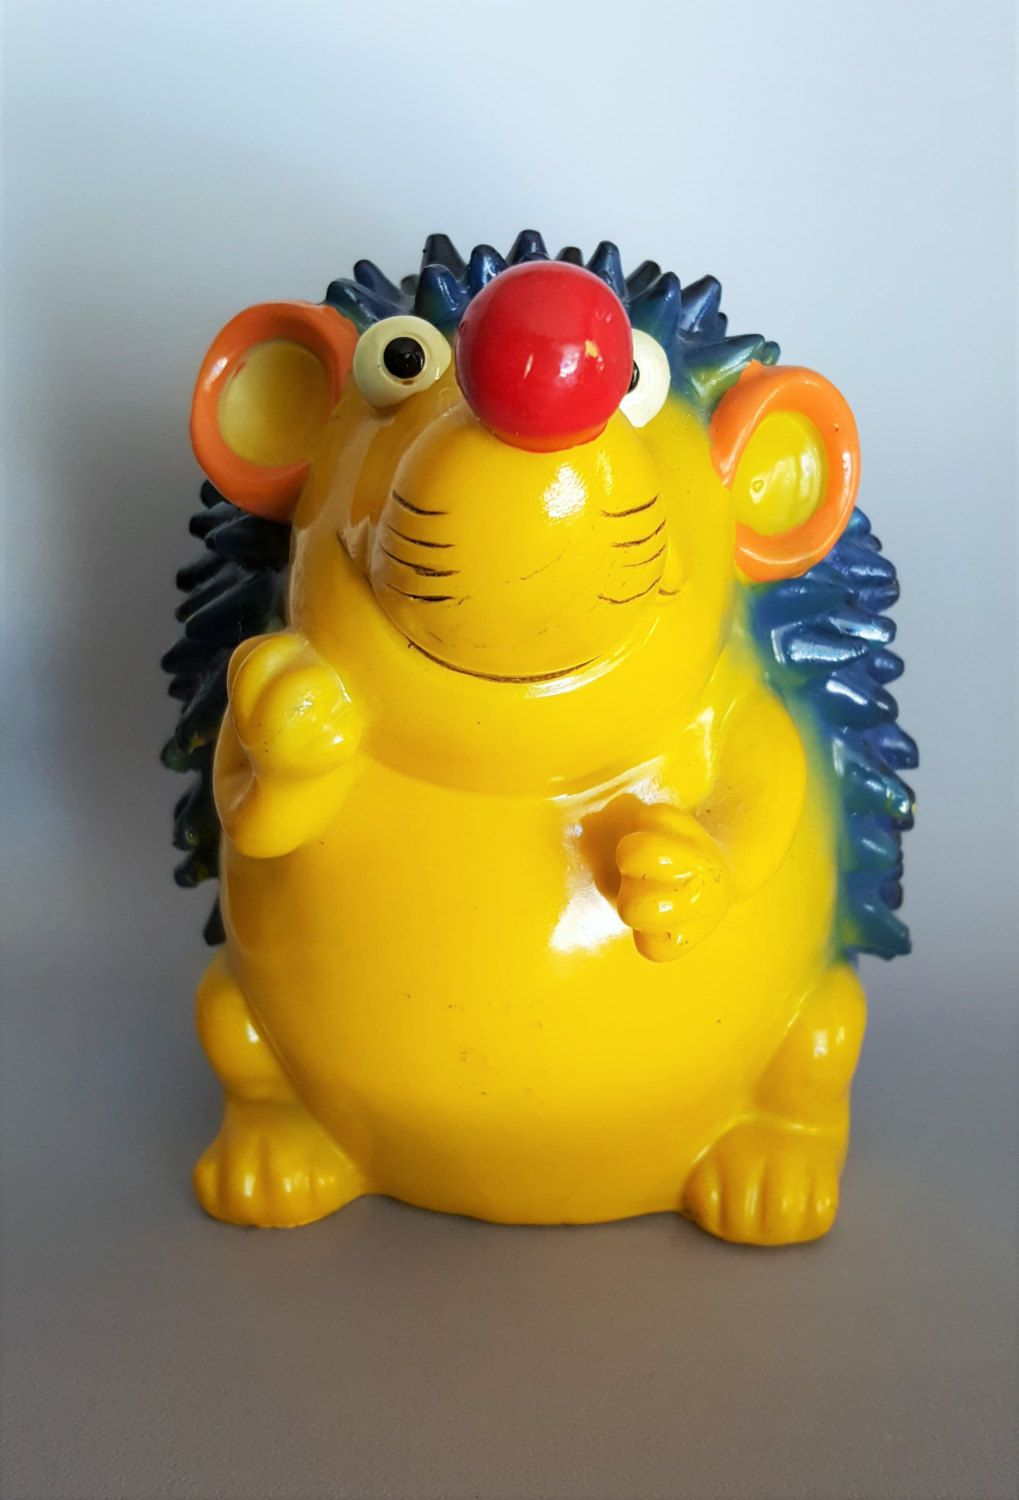 Hedgehog coin bank vintage 1970s composition material blue and yellow adorable by CircularVintage on Etsy